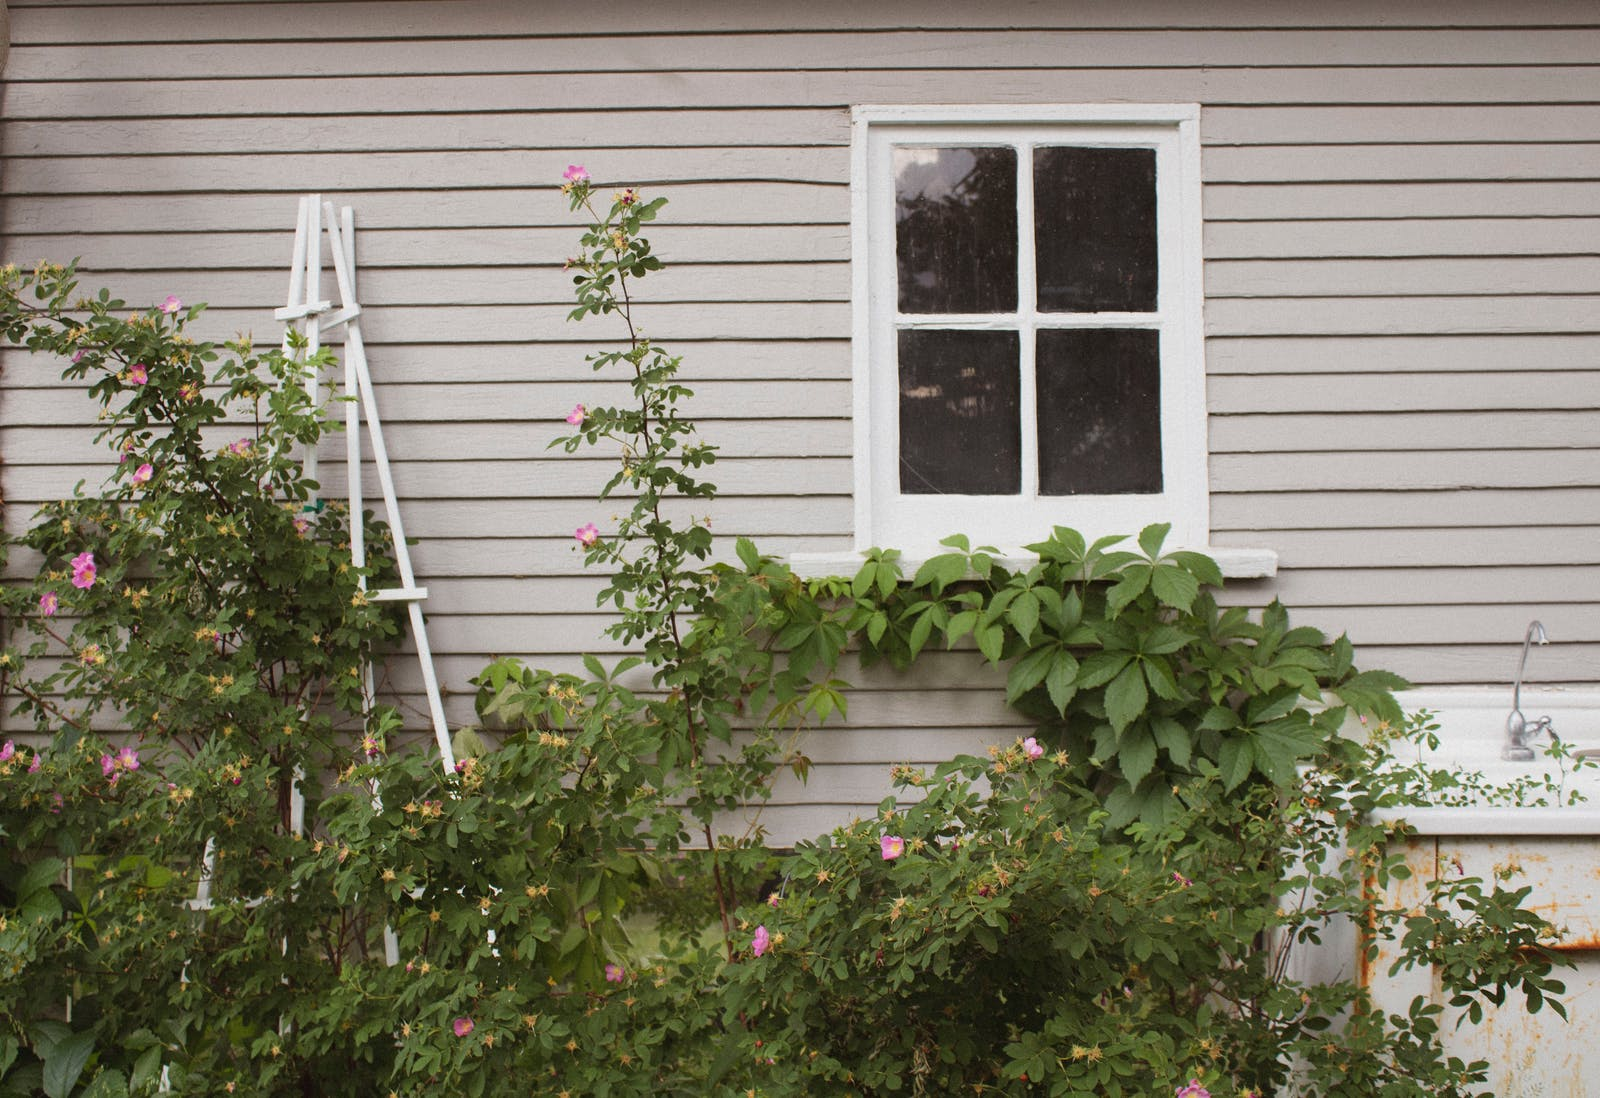 Grey garden shed with greenery against the wall